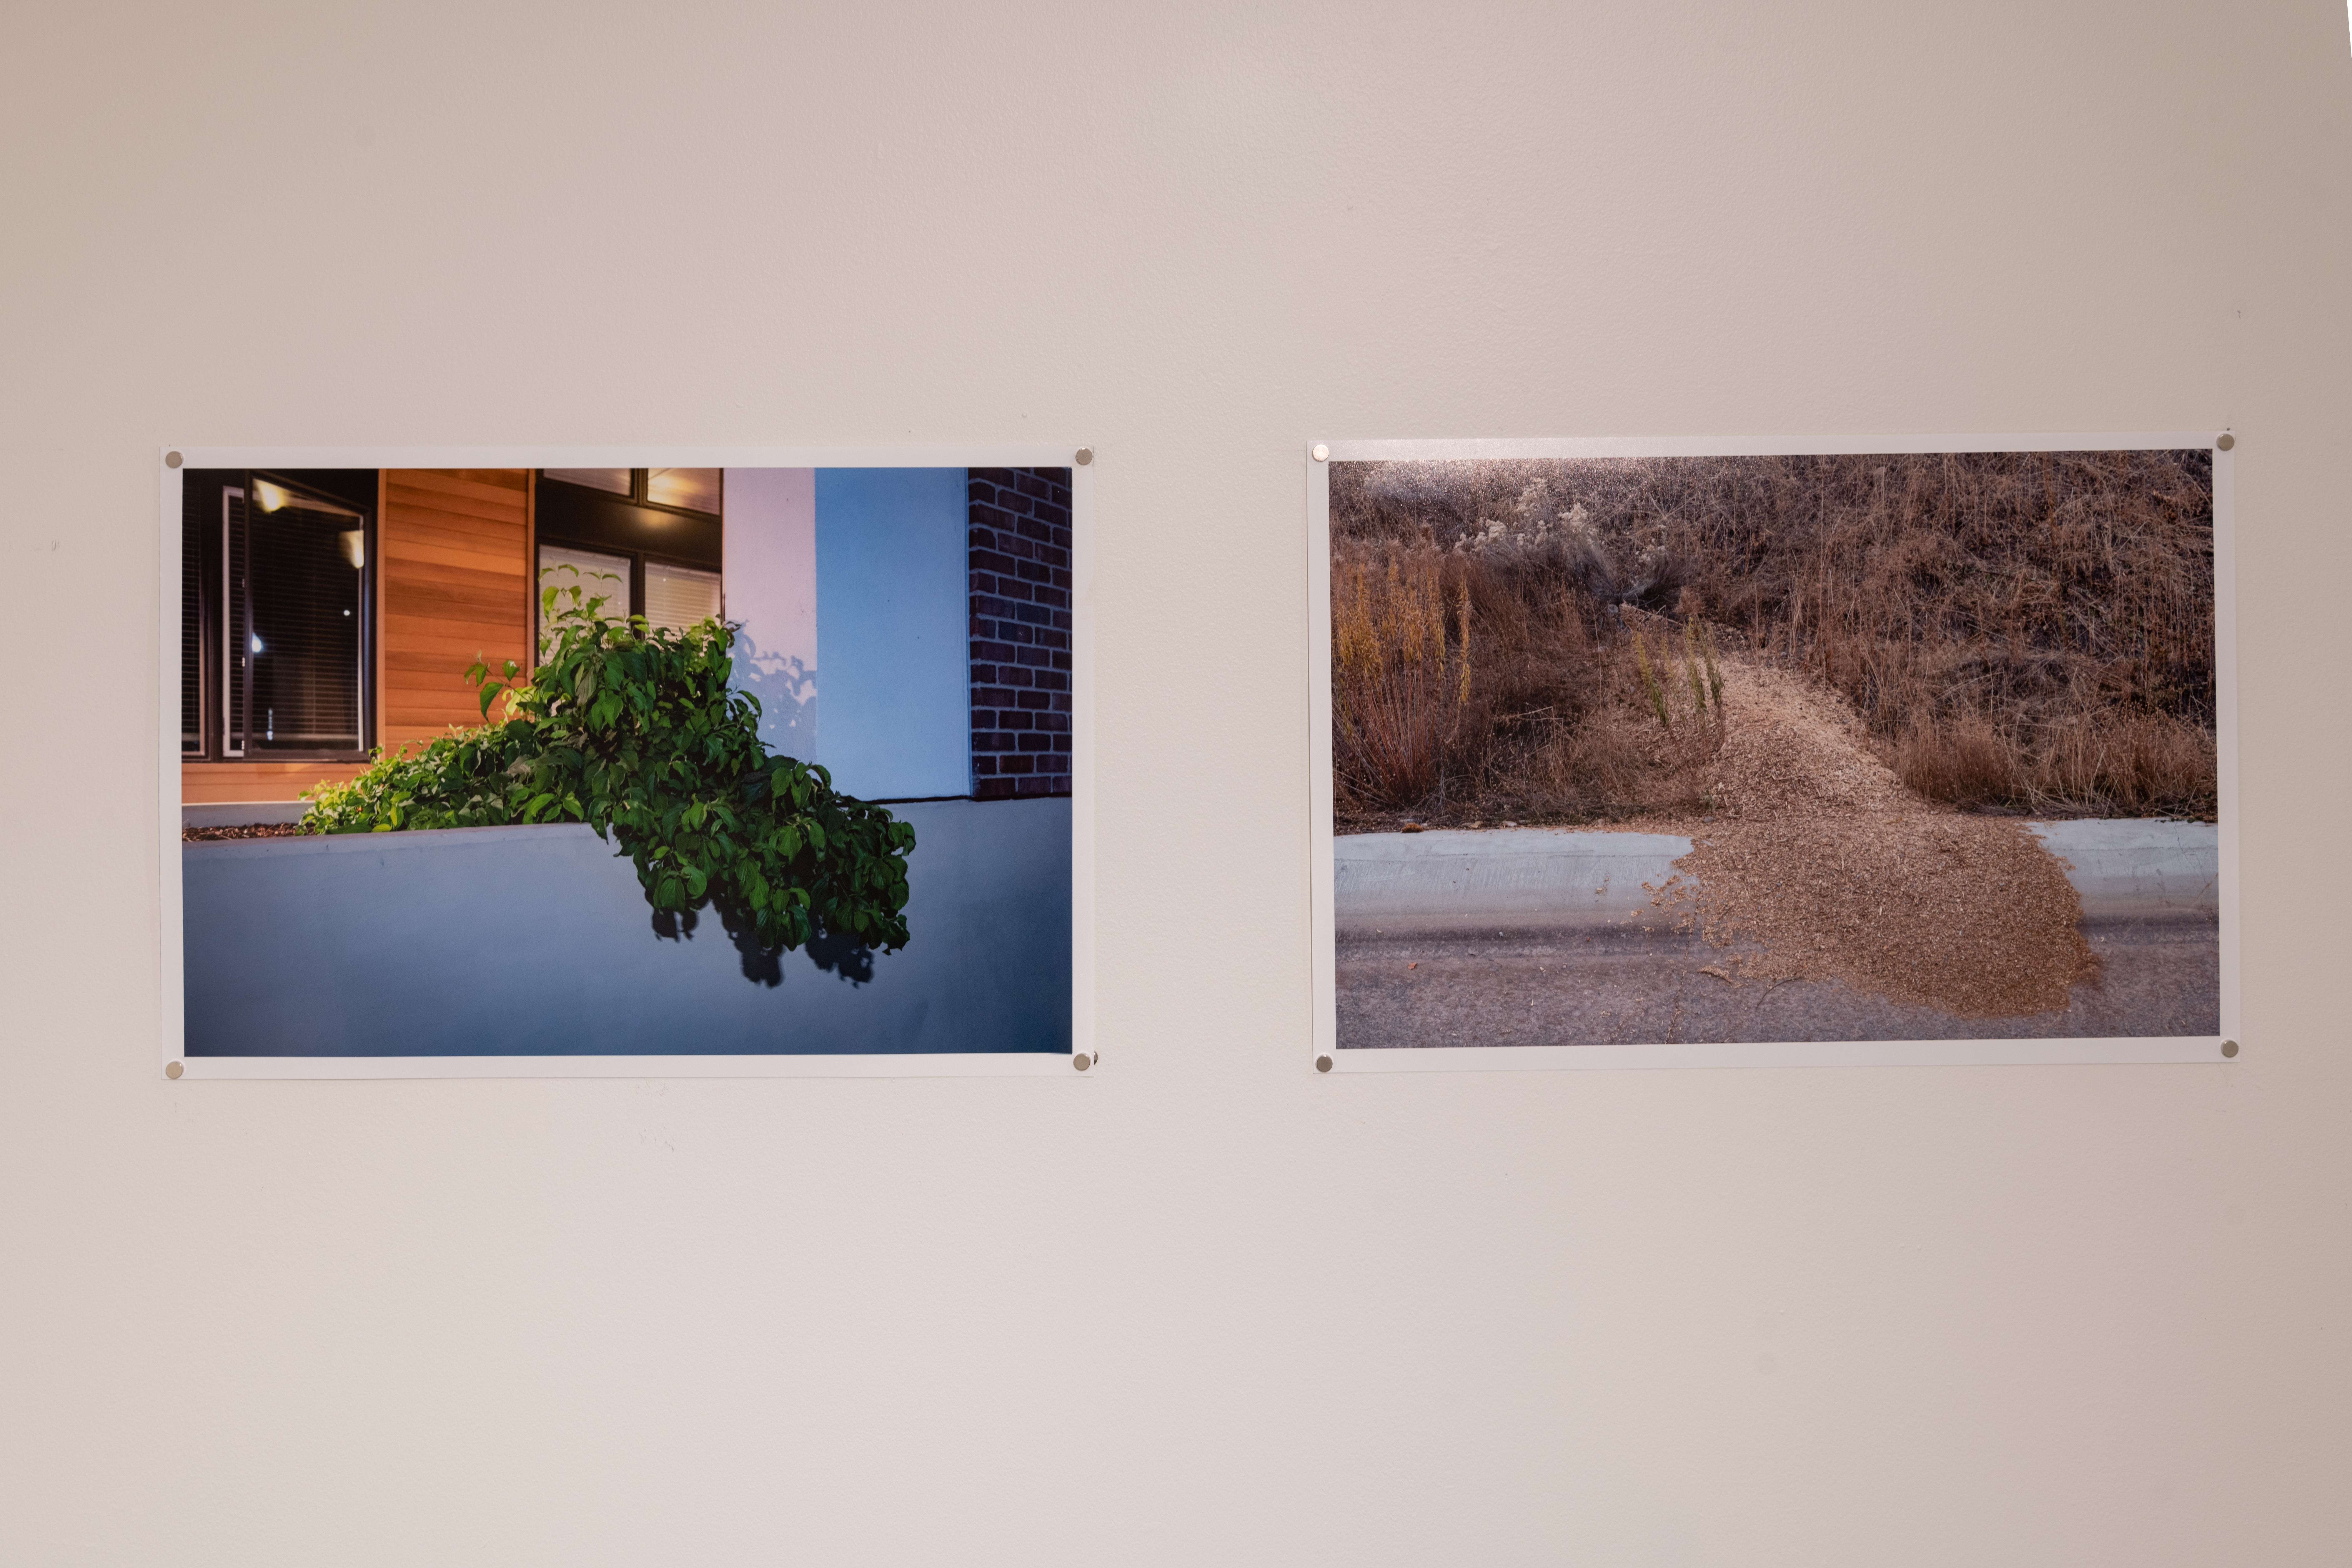 Gallery installation of Untitled 14 small prints showing 2 photos, left image shows greenery climbing over a white wall, right image shows brown wood chips creeping out of a brown, weedy area.